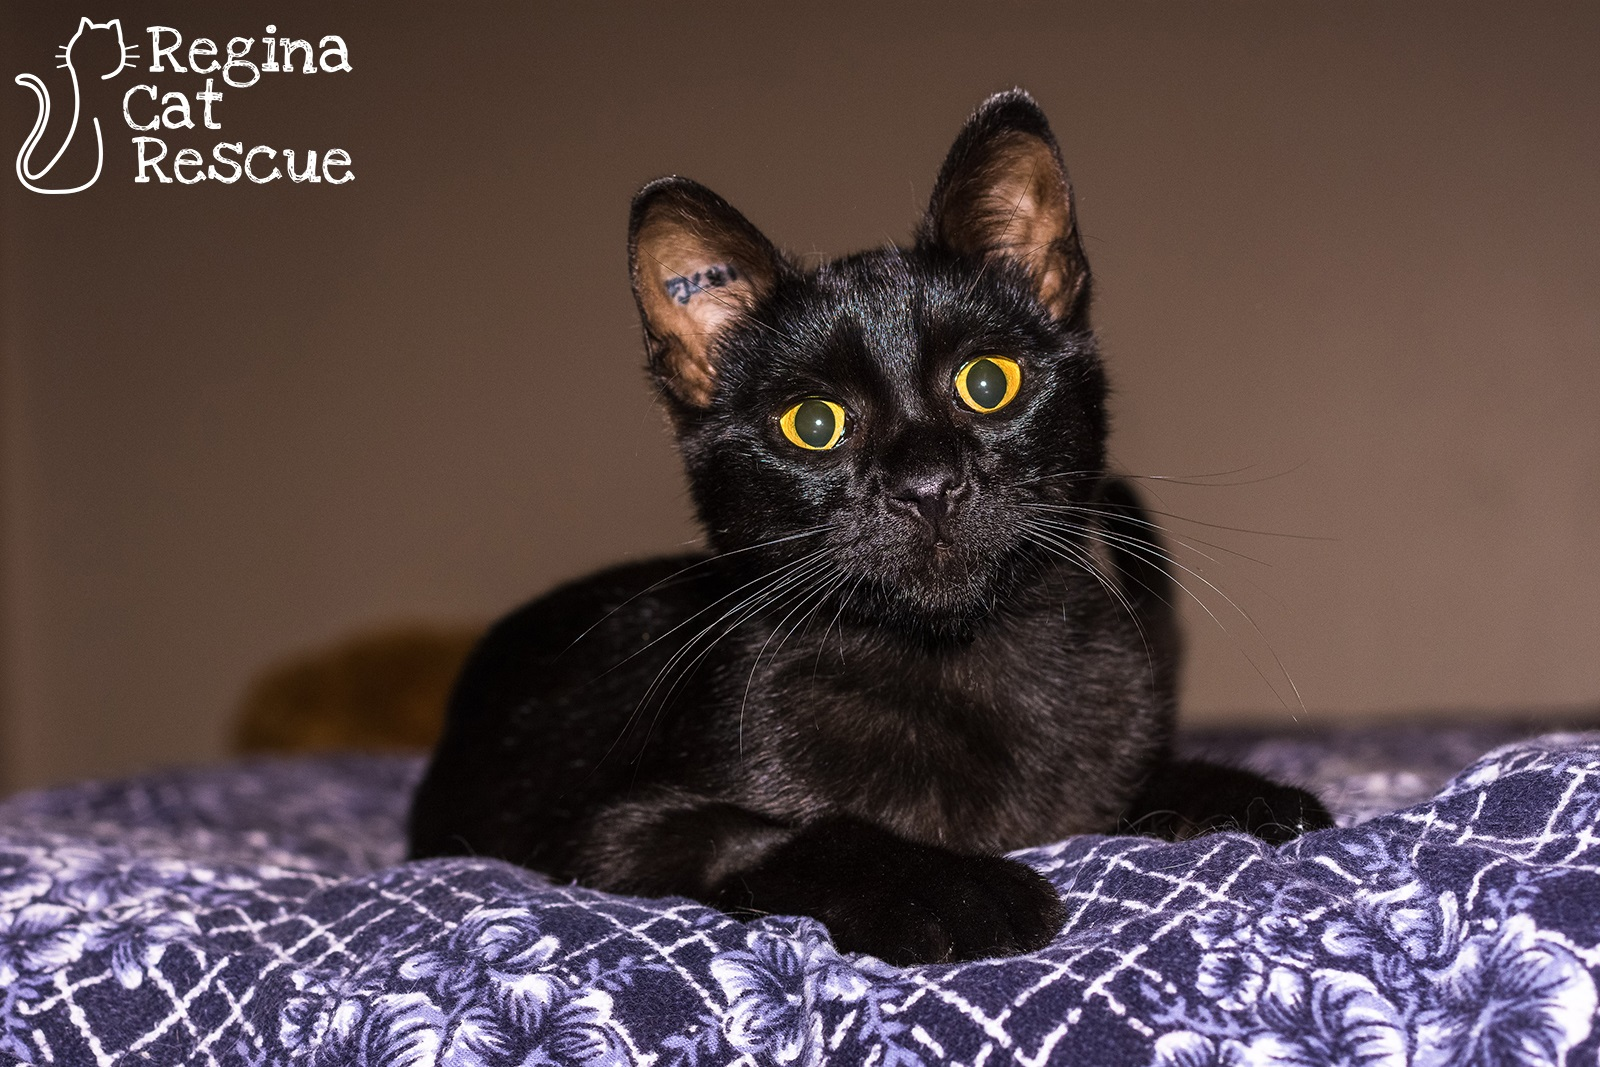 Photos of Onyx by Lindsey-Frozen Moments Photography